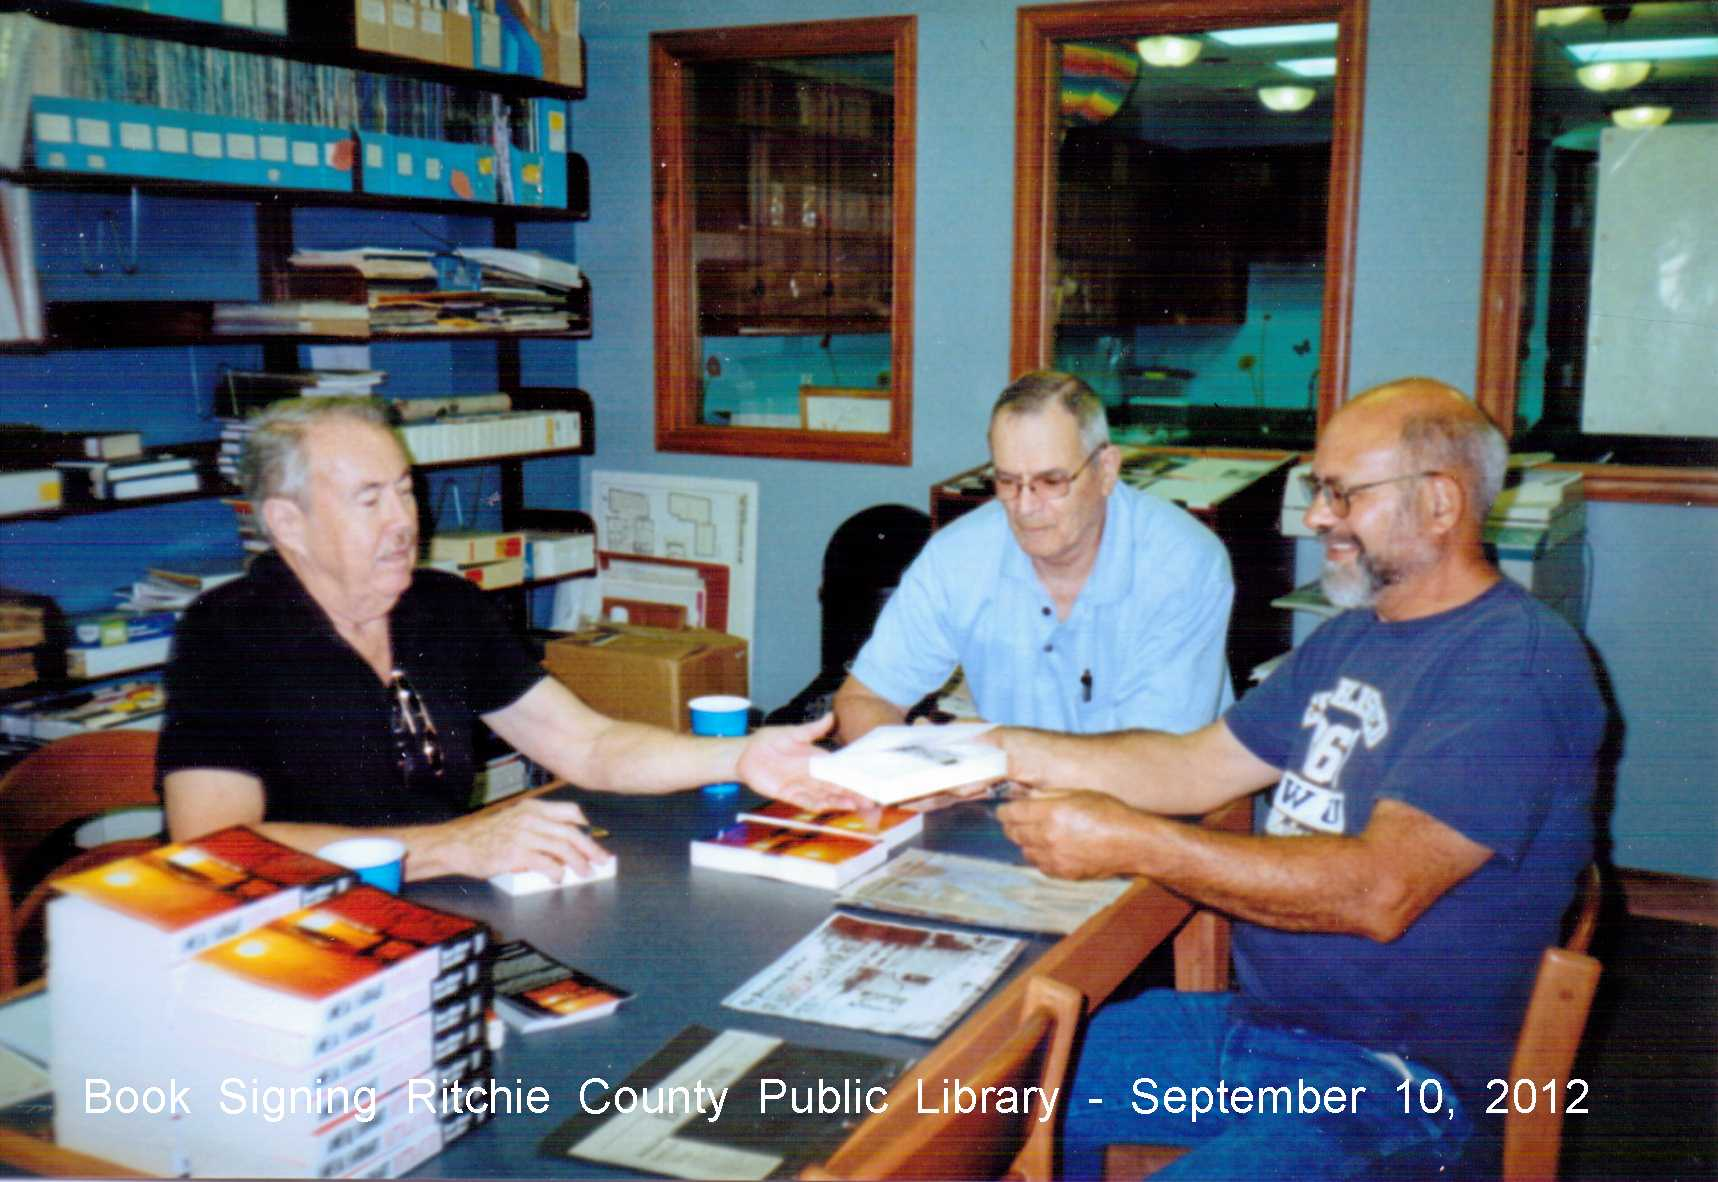 Authors Bob and Fred